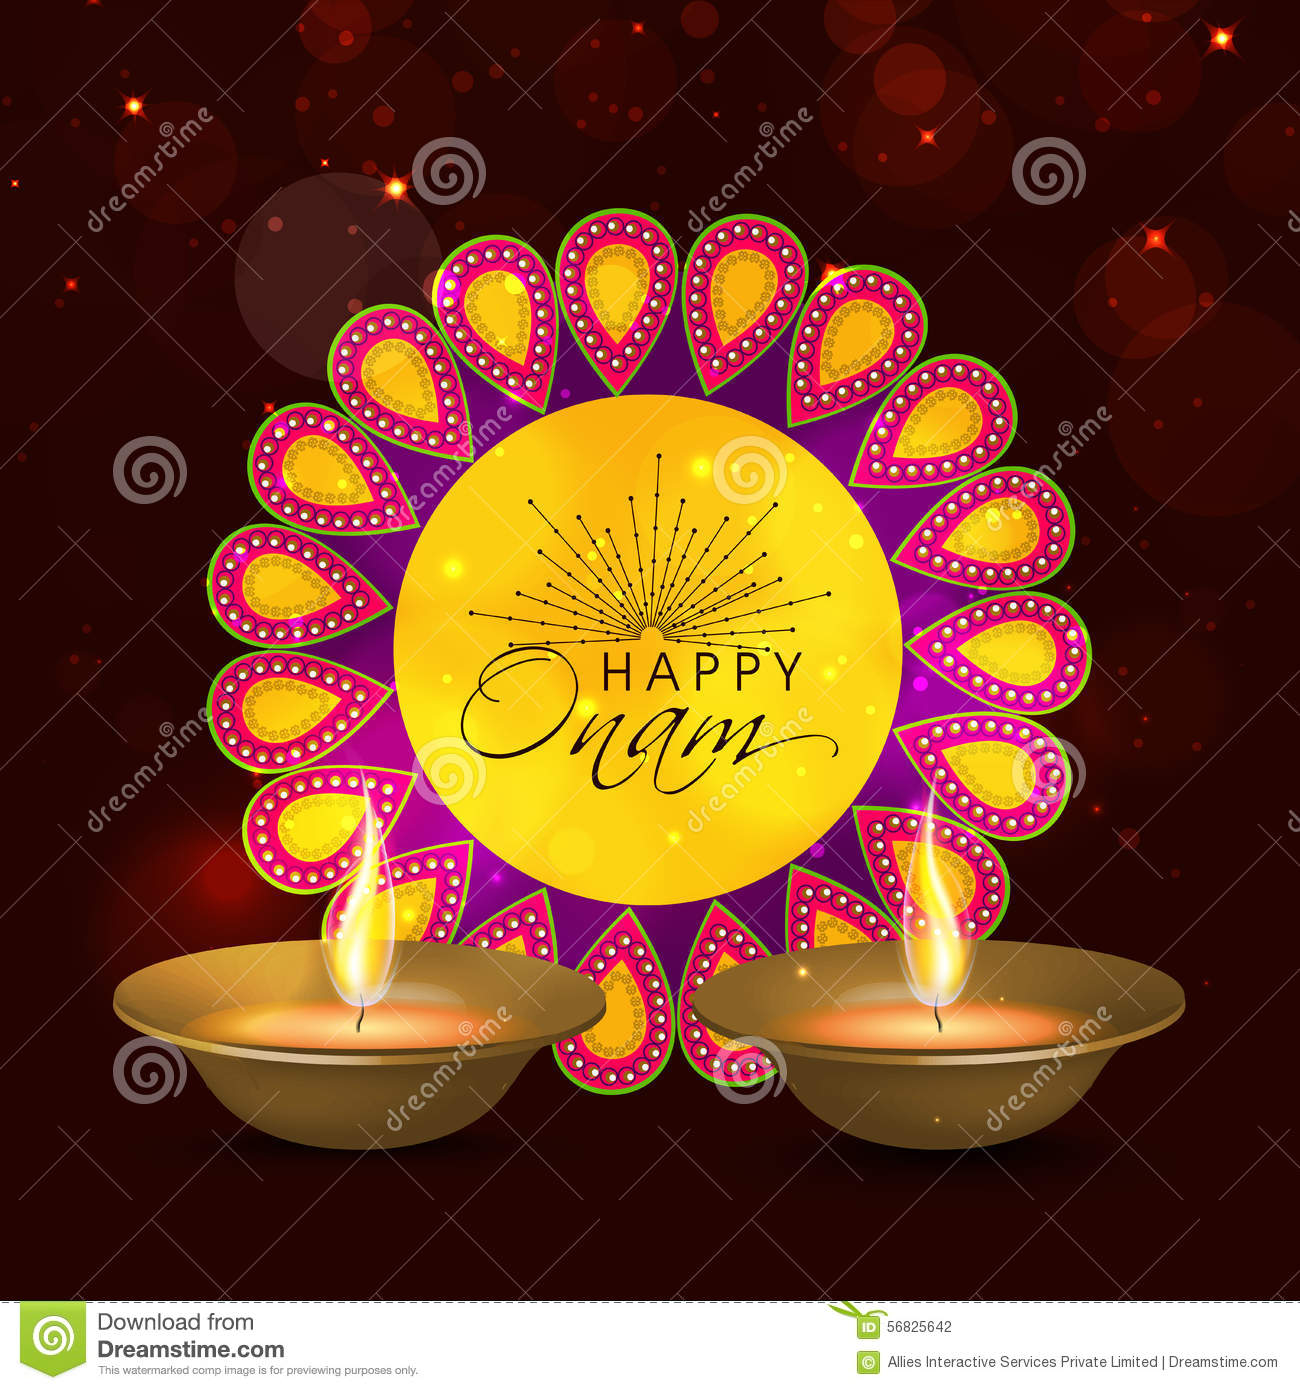 Greeting Card For Happy Onam Celebration Illustration 56825642